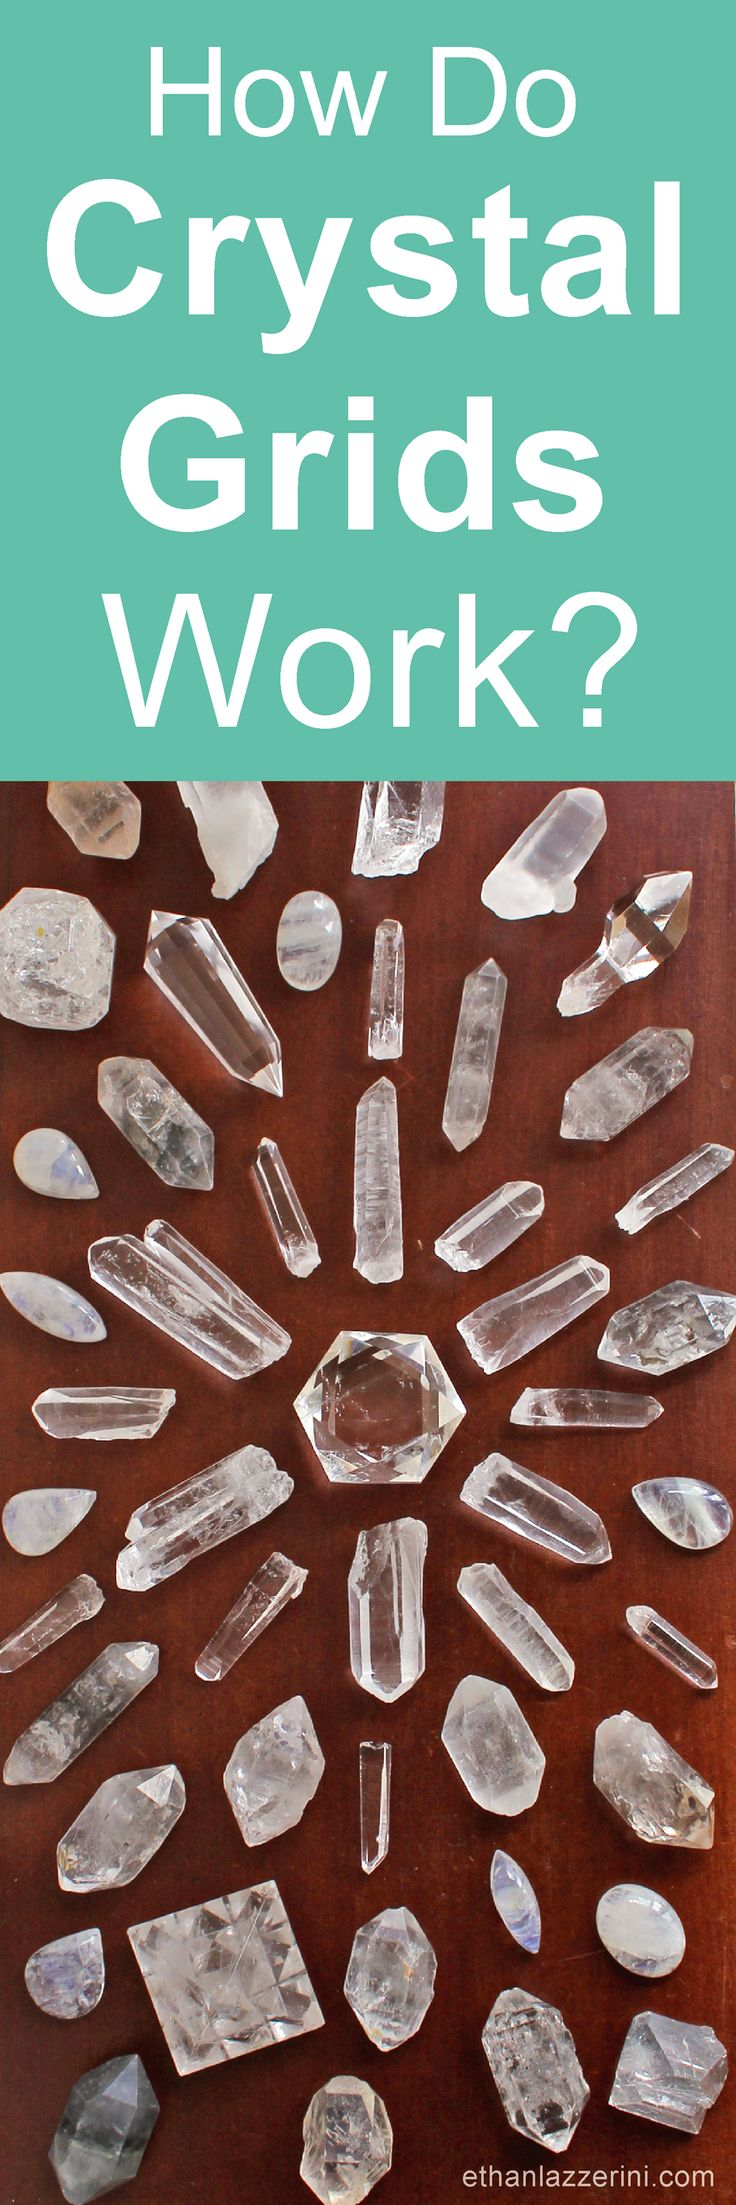 How and why do Crystal Grids work? Manifesting, Crystal Healing, Sacred Geometry, Law of Attraction secrets.